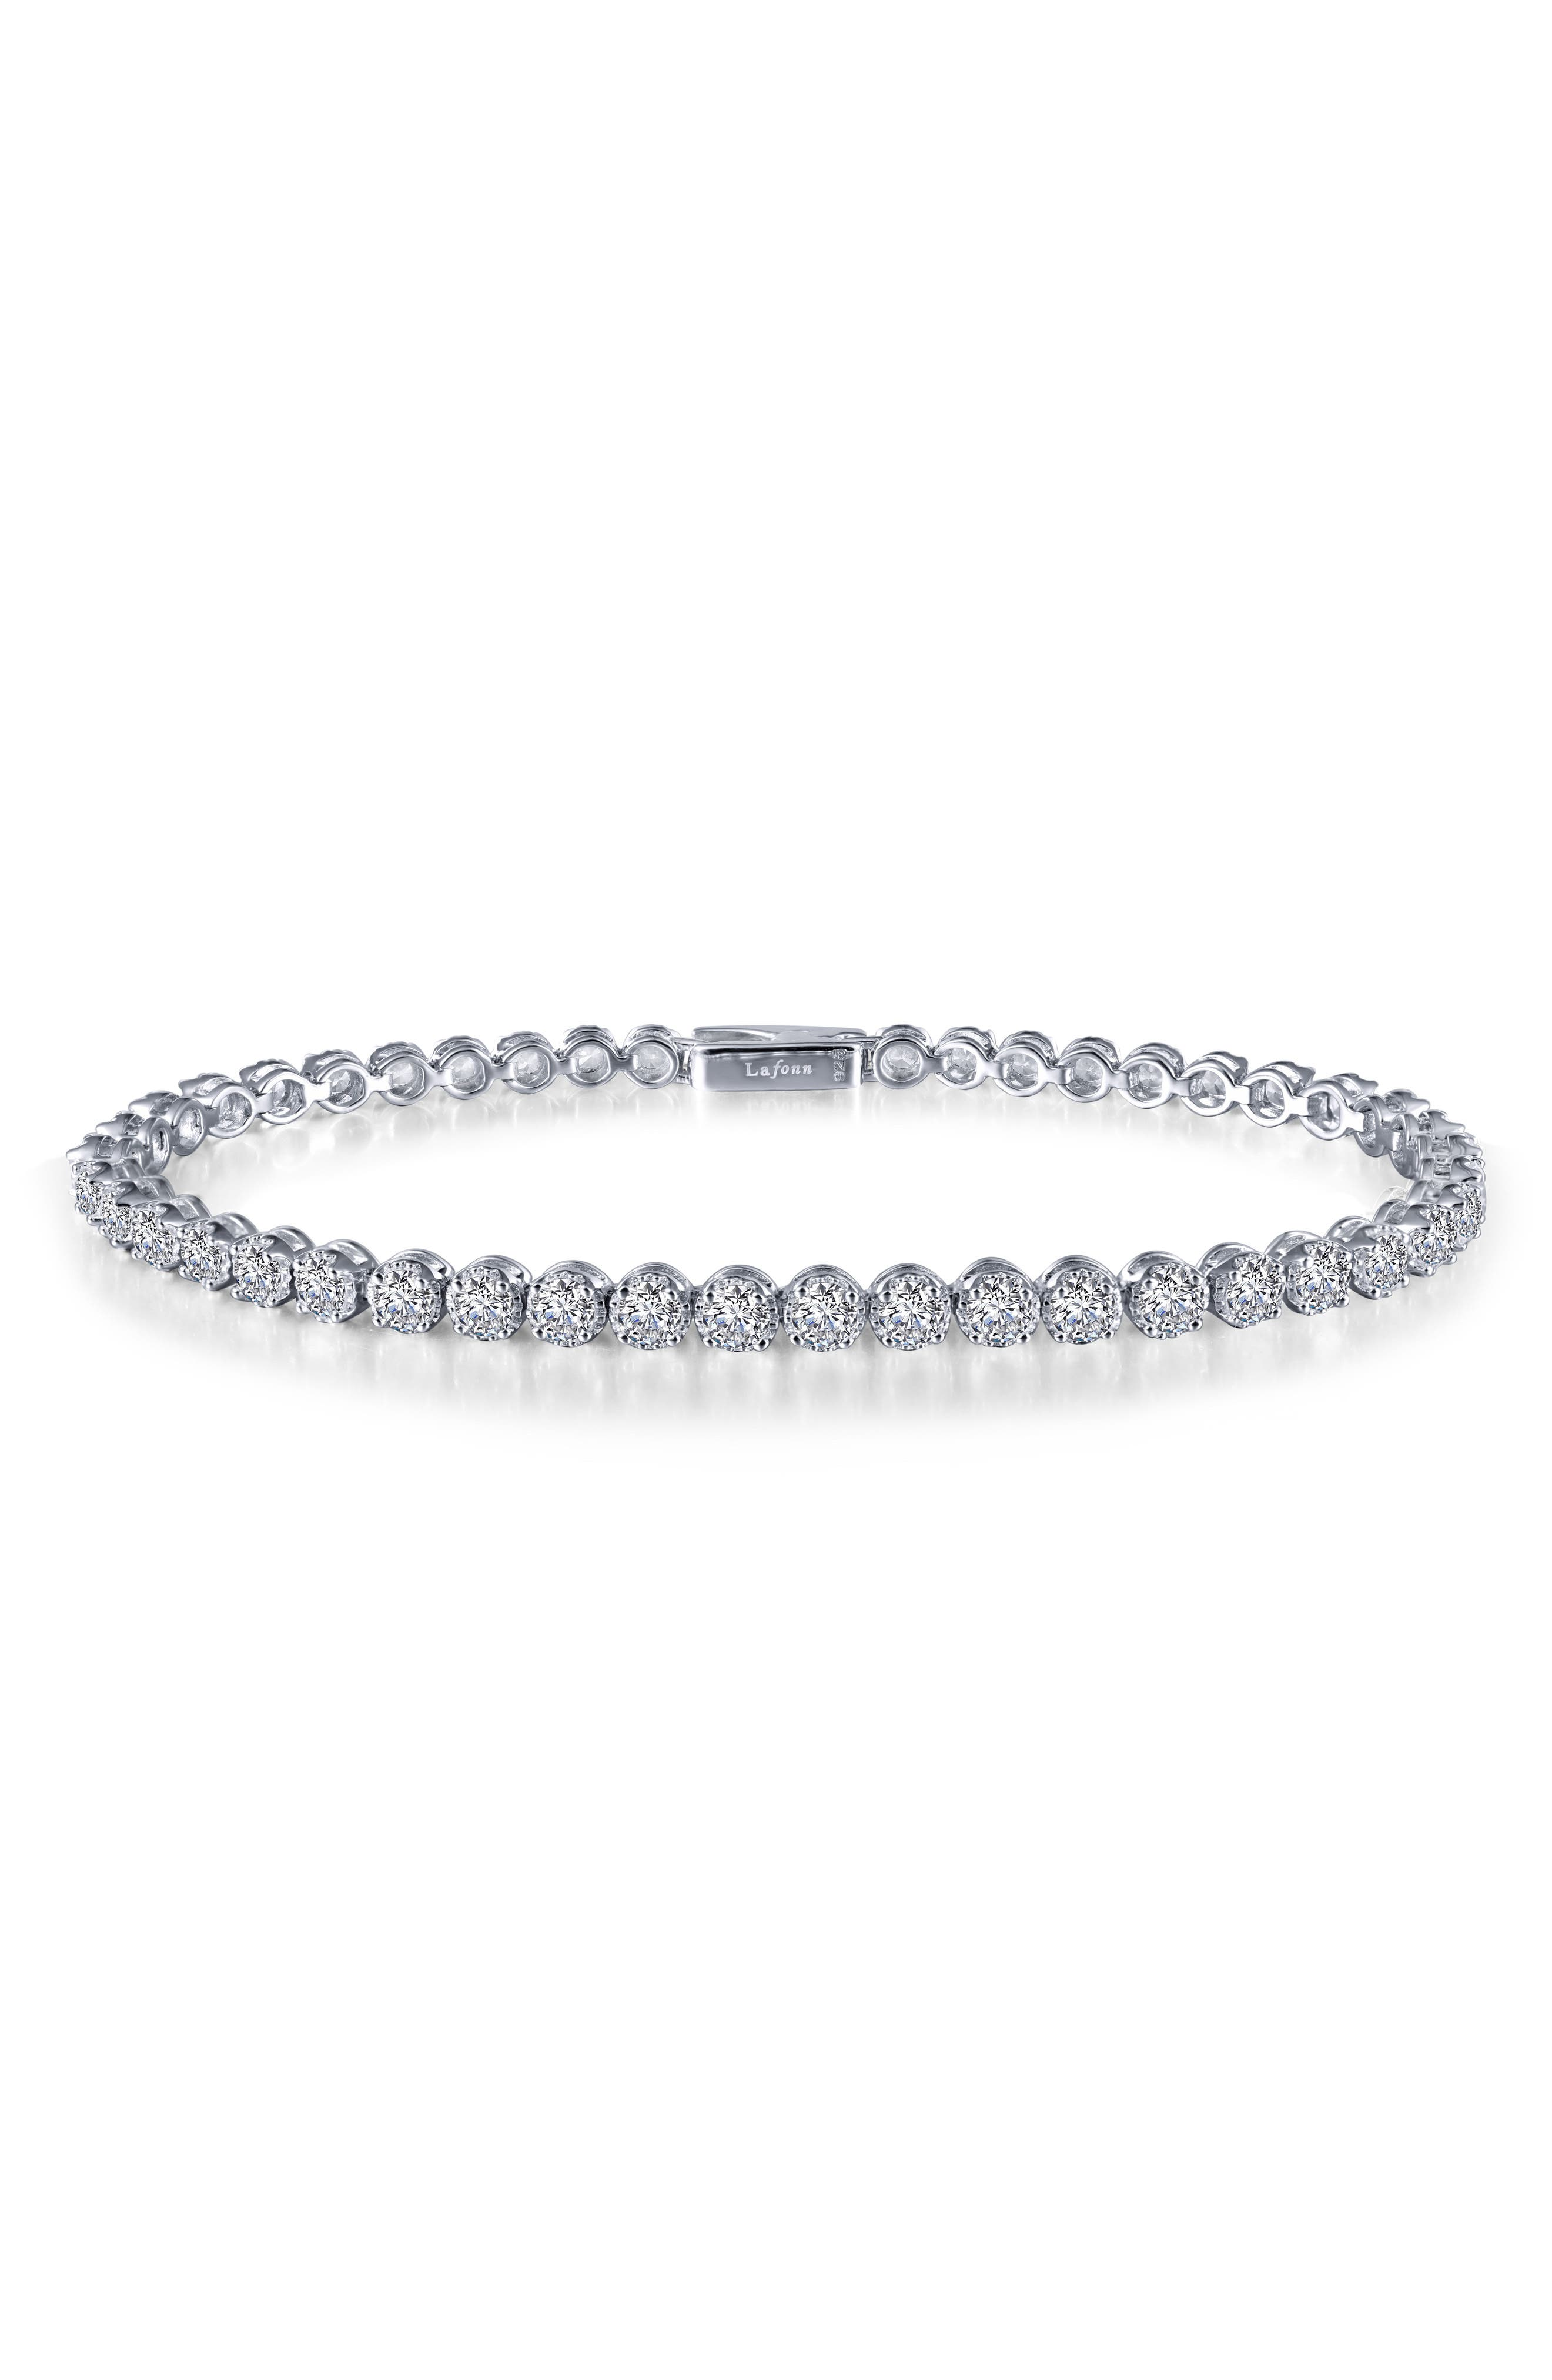 Simulated Diamond Tennis Bracelet,                             Main thumbnail 1, color,                             SILVER/ CLEAR